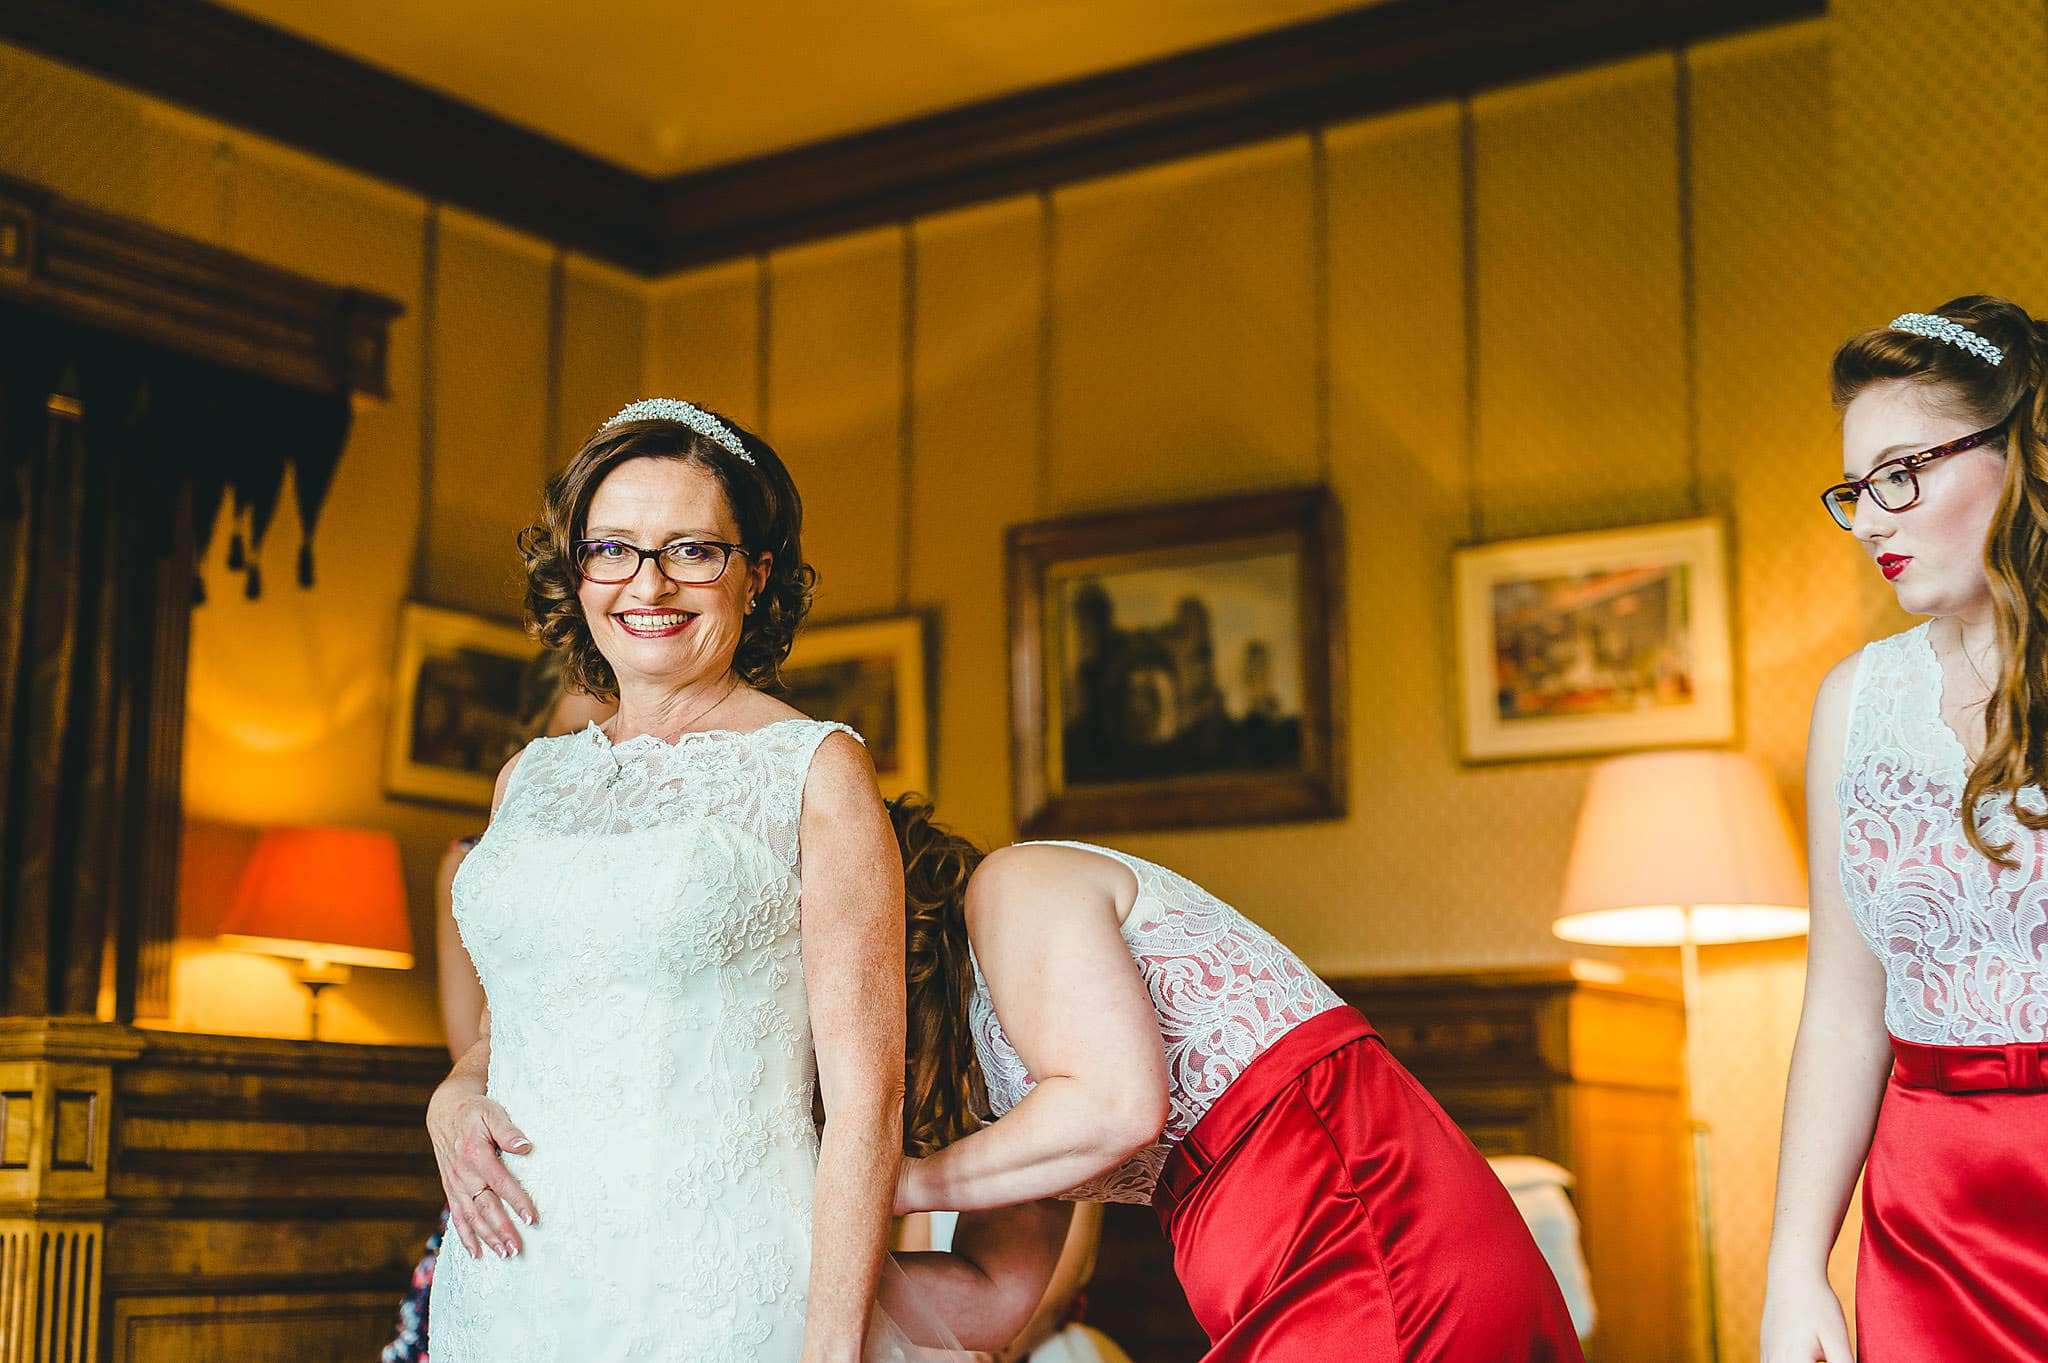 wedding-photography-at-eastnor-castle-in-herefordshire (25)